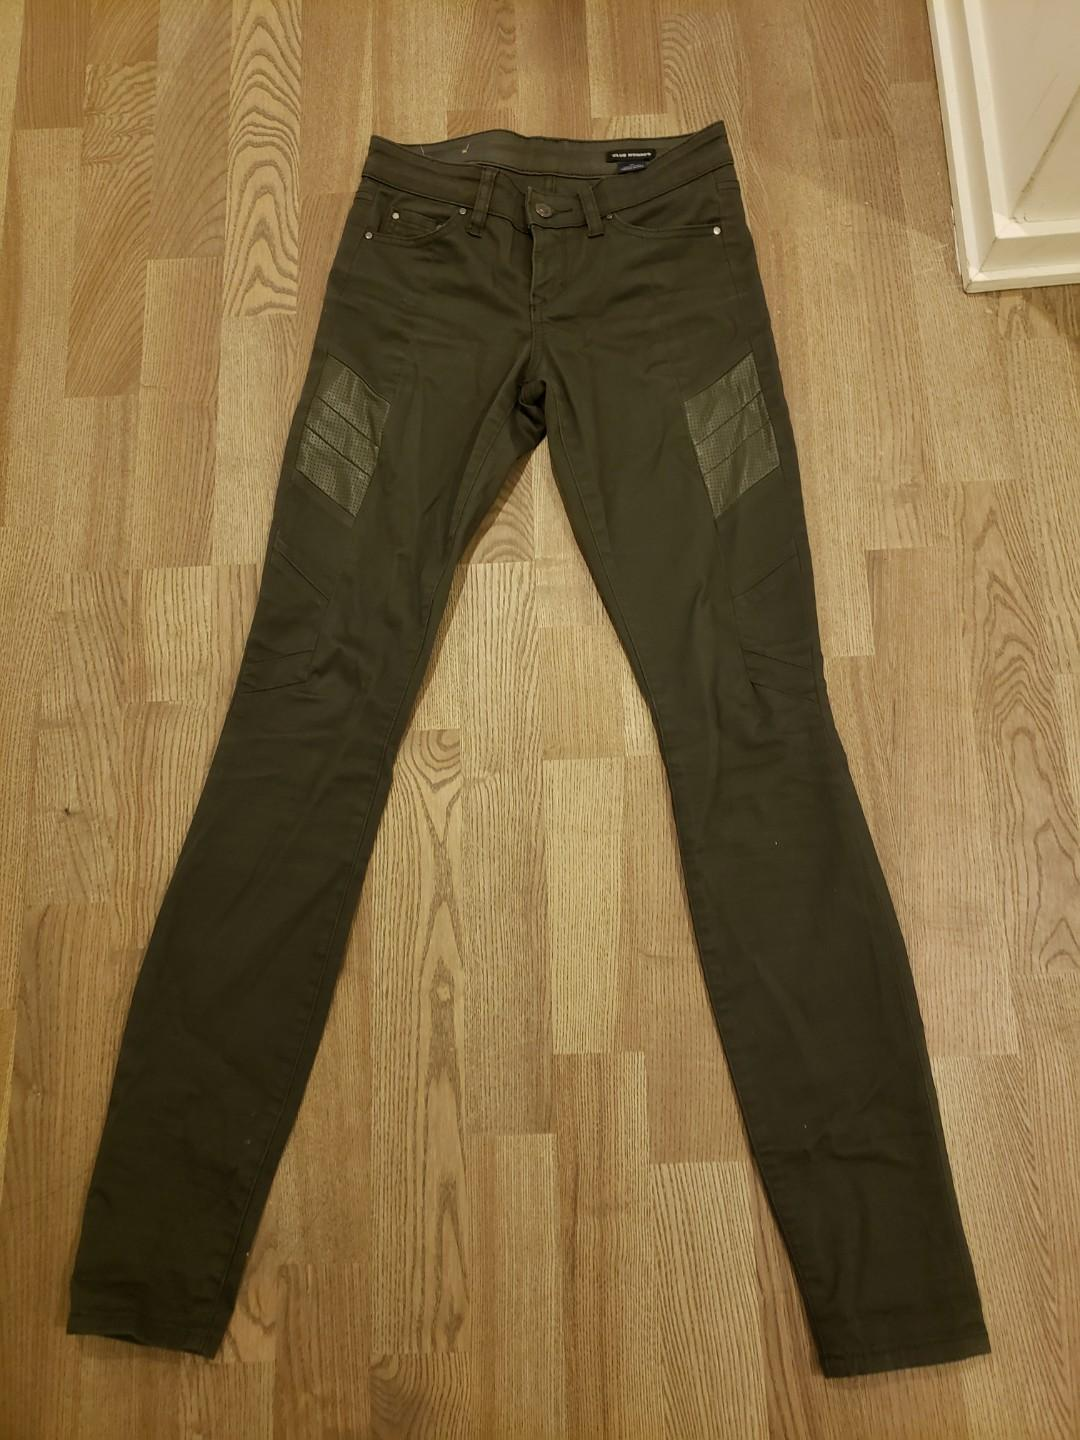 Club Monaco XS army green skinny jeans / pants with leather side detail